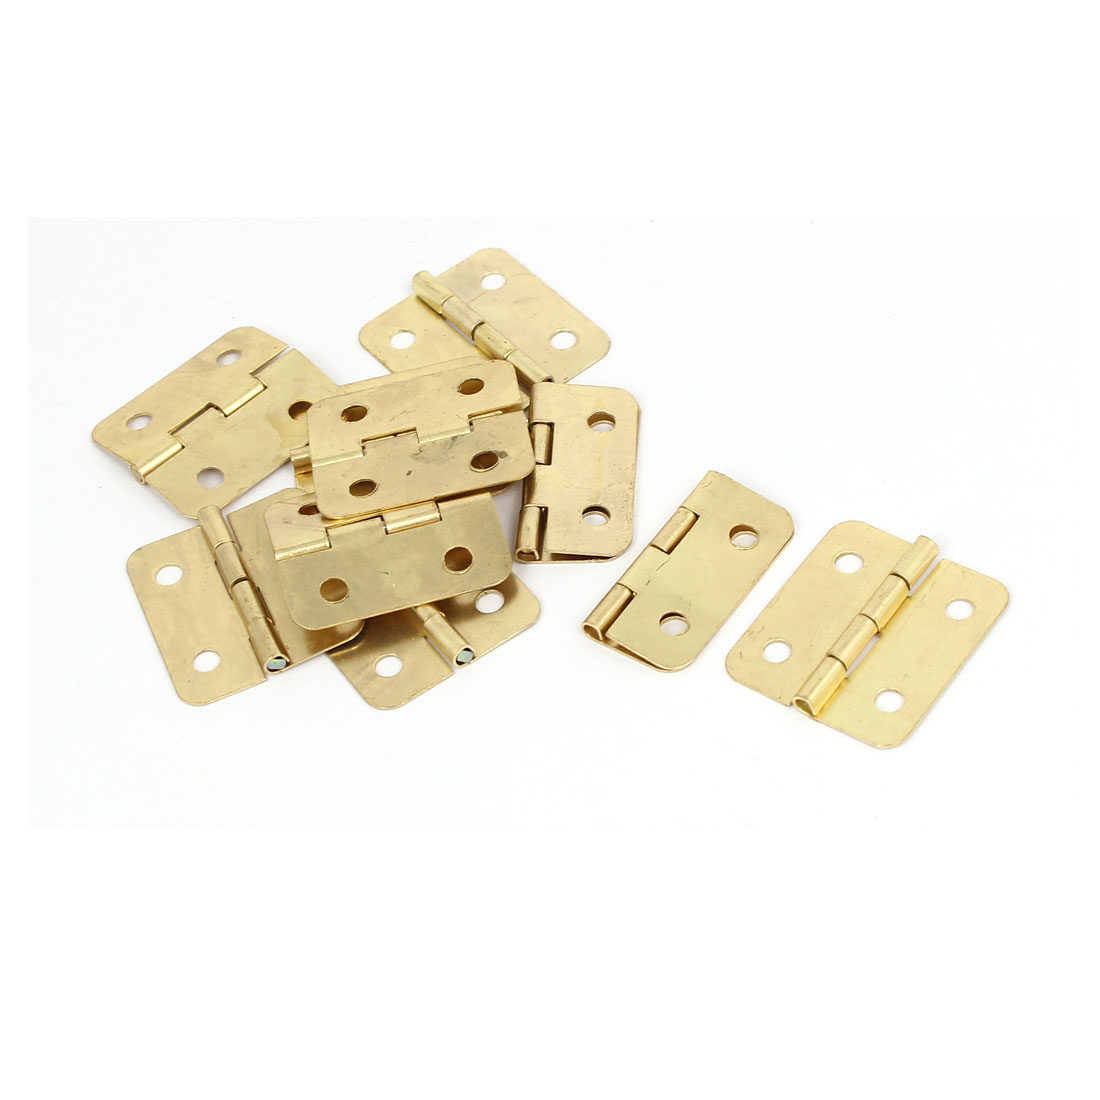 "Drawer Cupboard Door Metal Butt Hinges Gold Tone 1.2"" Length 10PCS"